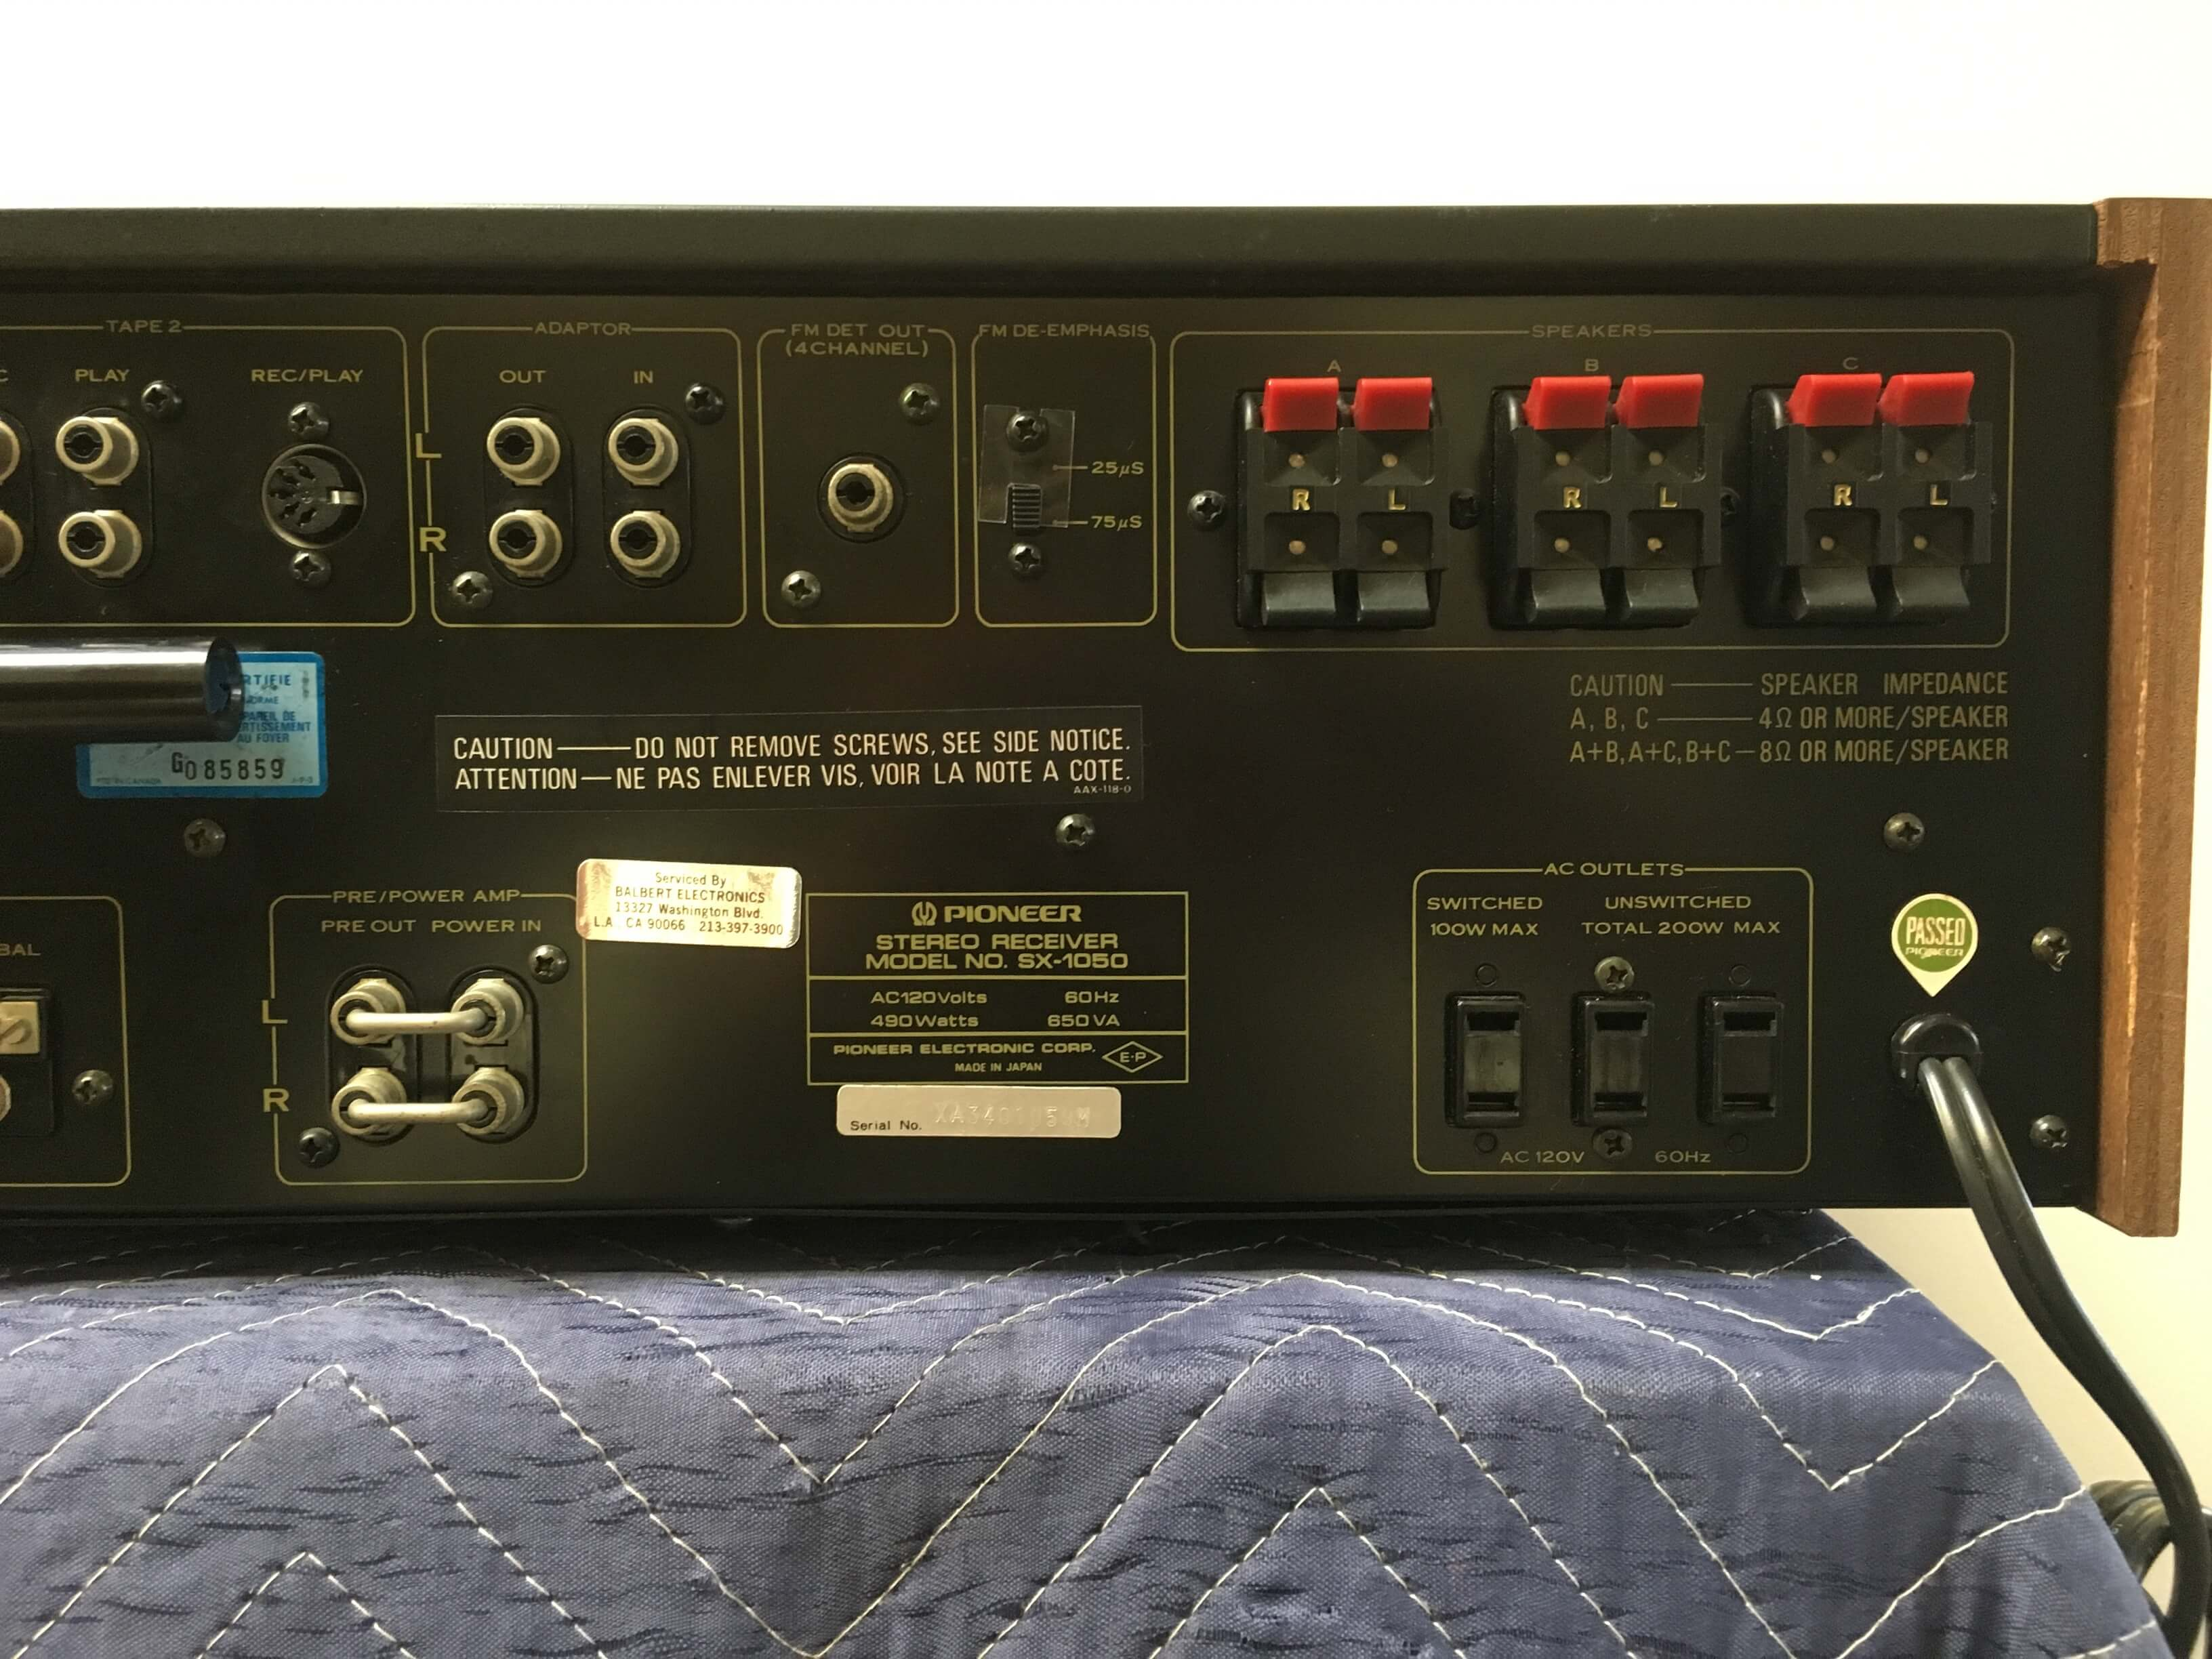 Pioneer receiver SX-1050 (sold only with Pioneer cassette tape deck CT-F9191)